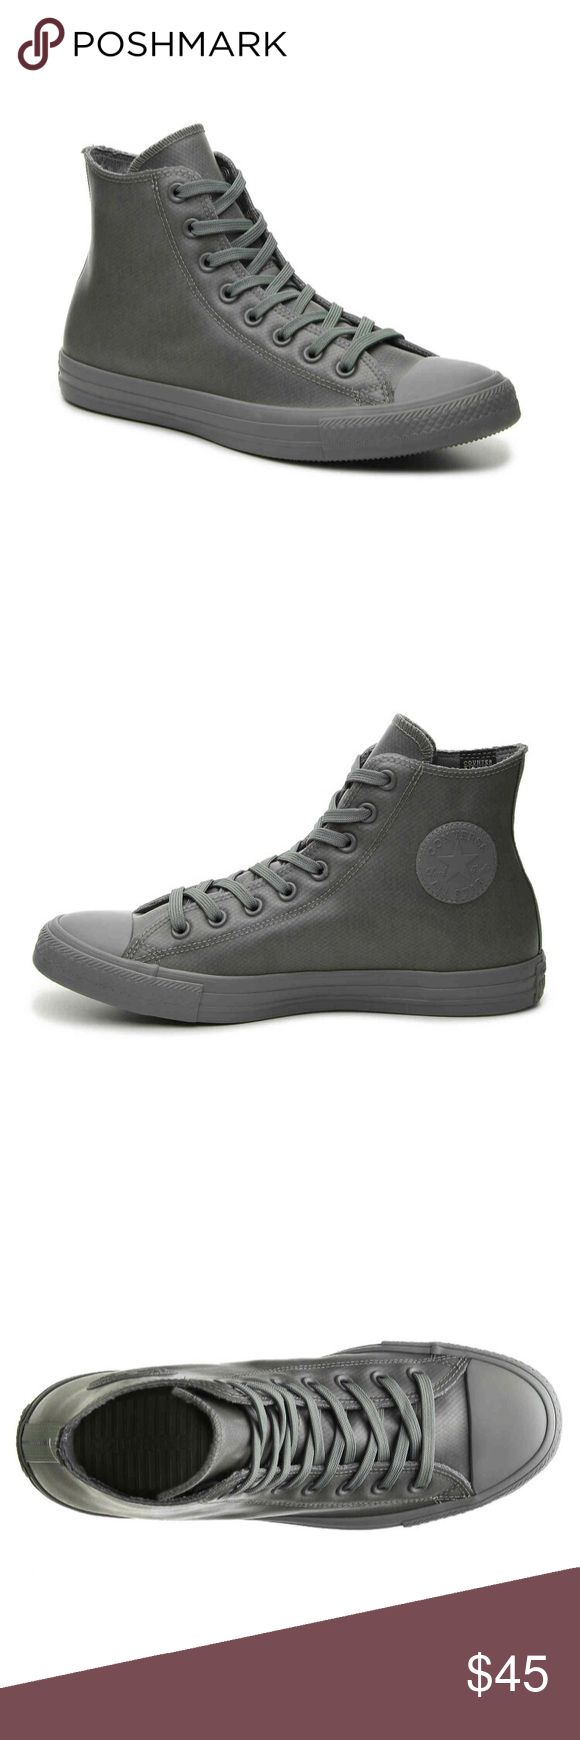 Converse Hightops Gray Rubber Converse Allstars NWOT Converse Shoes Sneakers